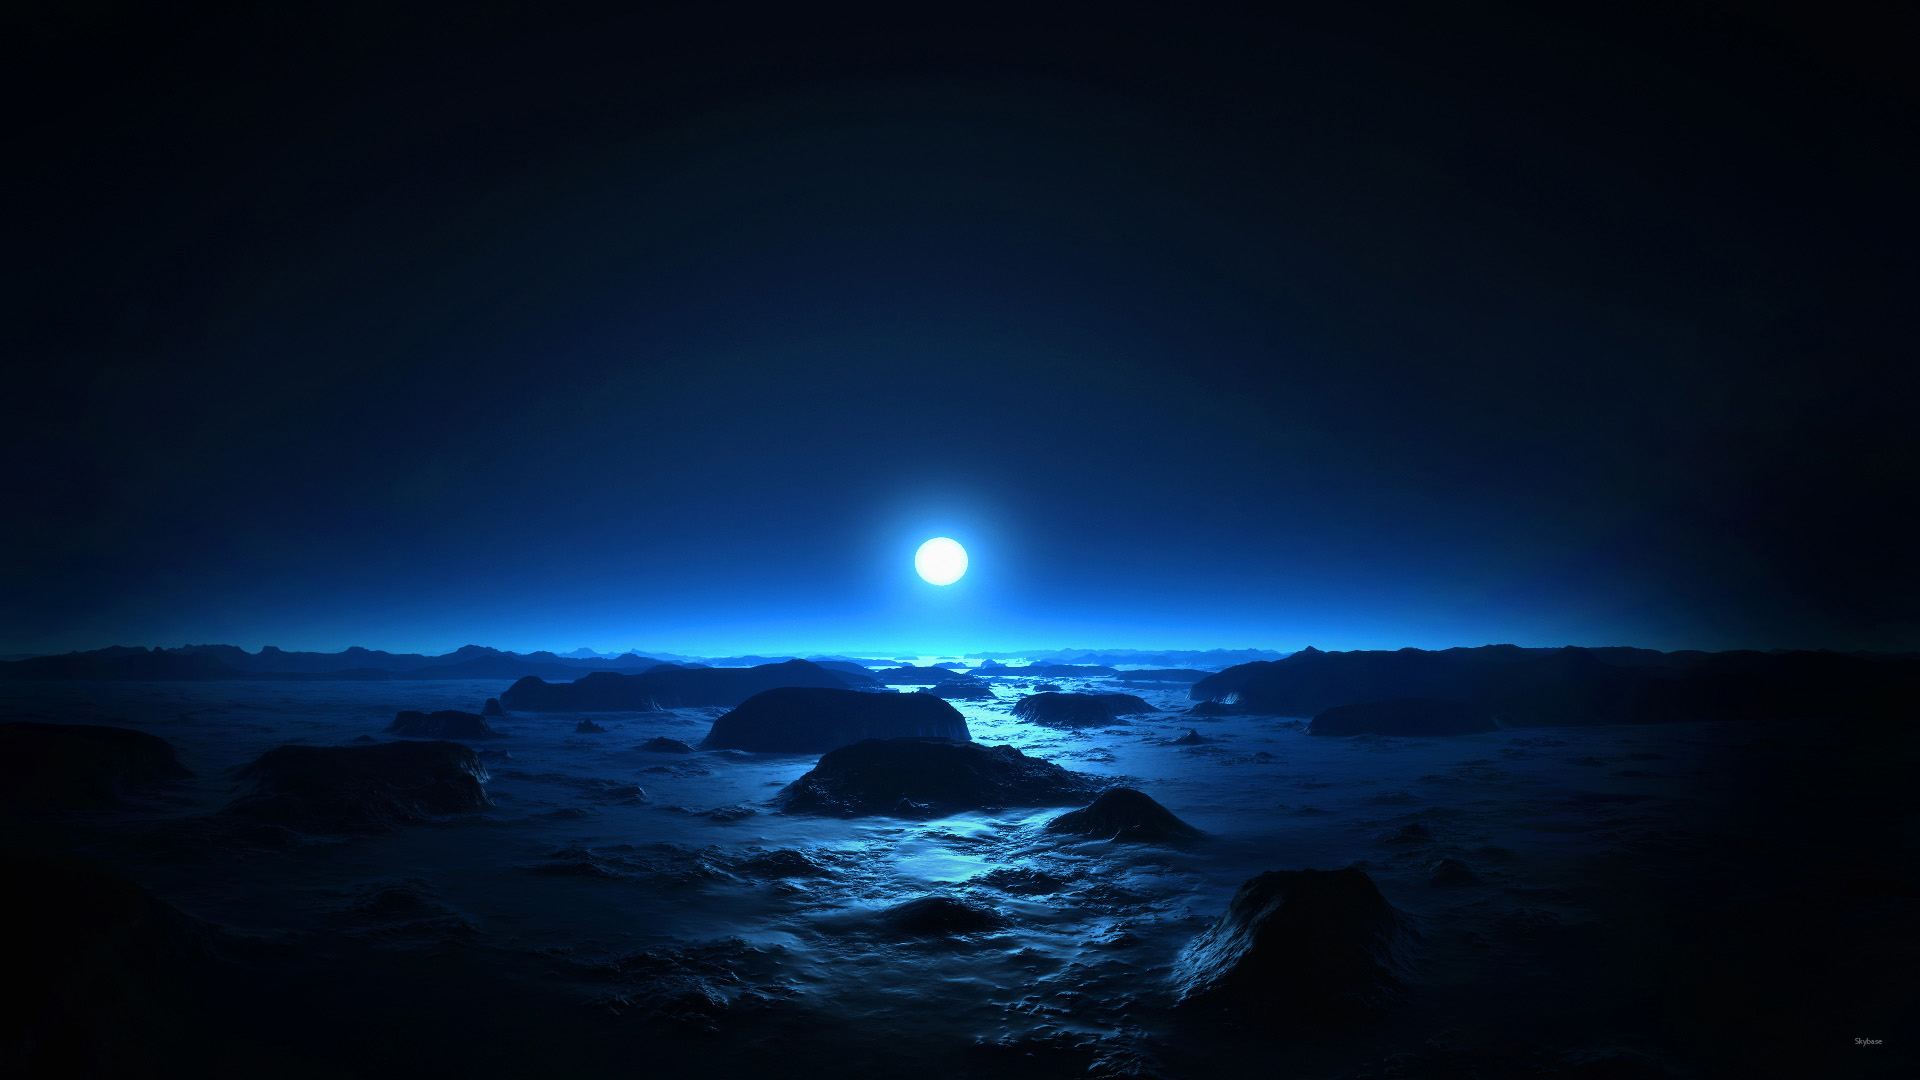 Moonlight glows and all remain